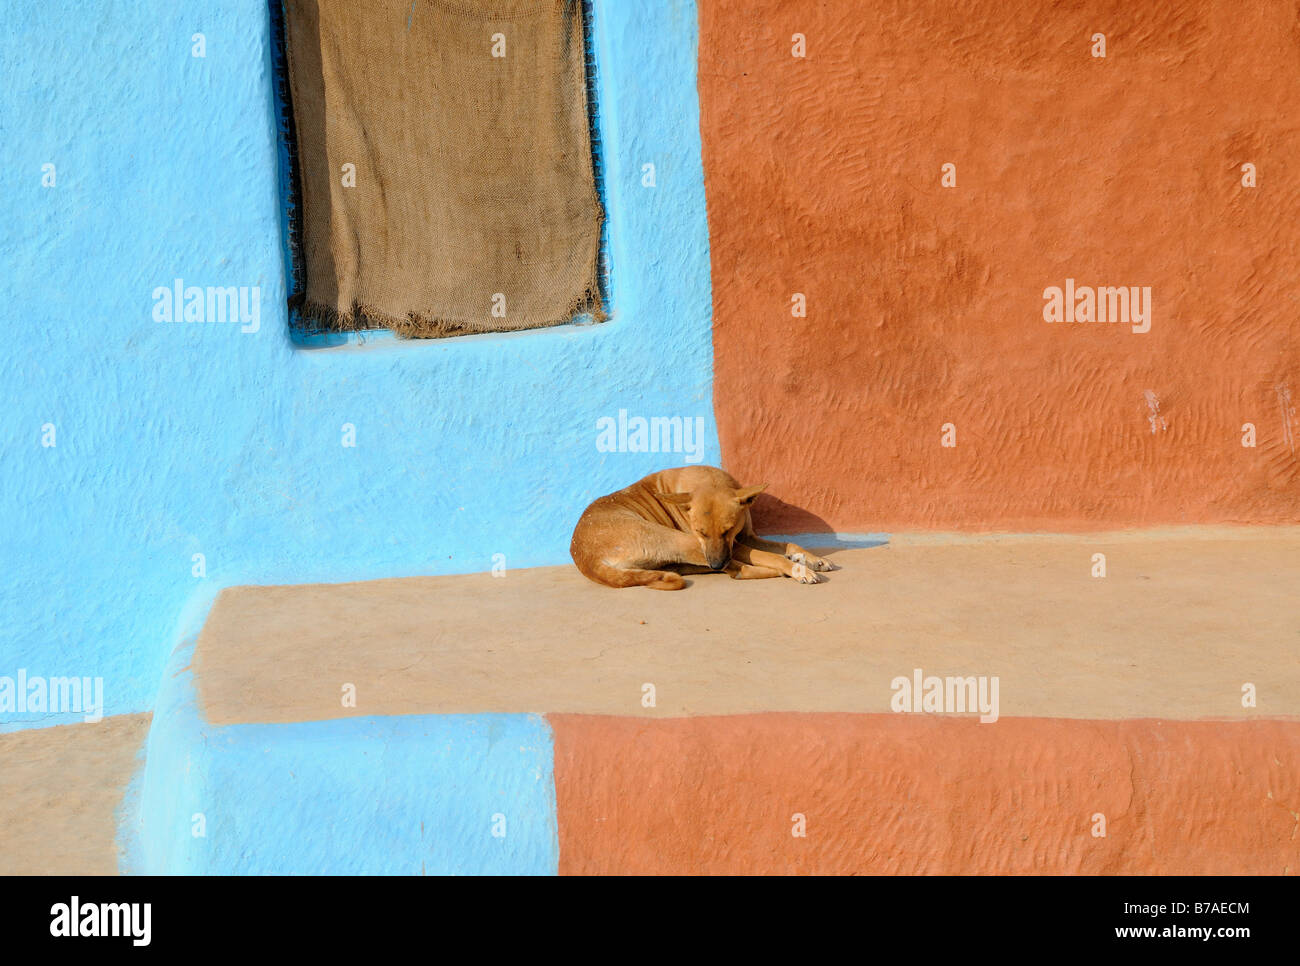 A brown dog lying on a smooth clay terrace sleeps in the morning sun. Behind him are terracotta and sky blue painted - Stock Image